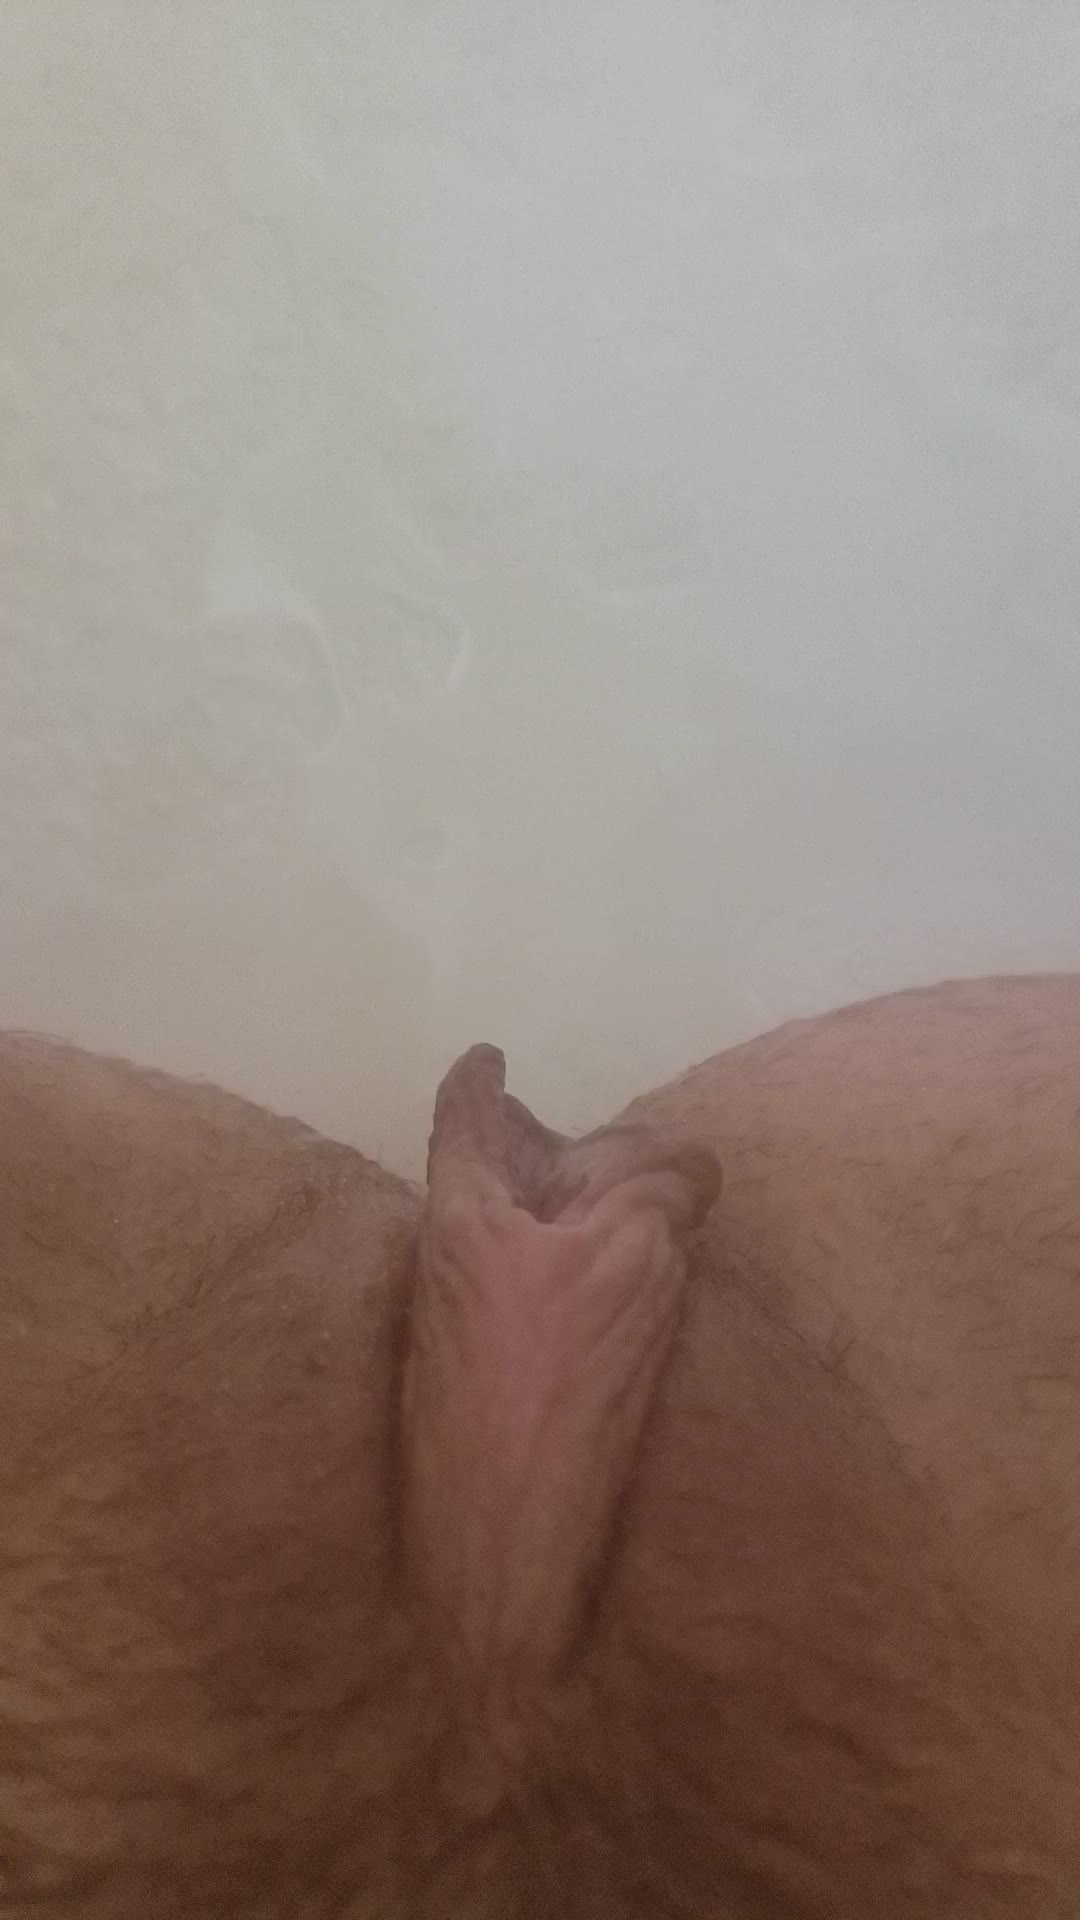 Just laying some eggs in the shower, sorry for the crappy quality~ <3 (he/him)